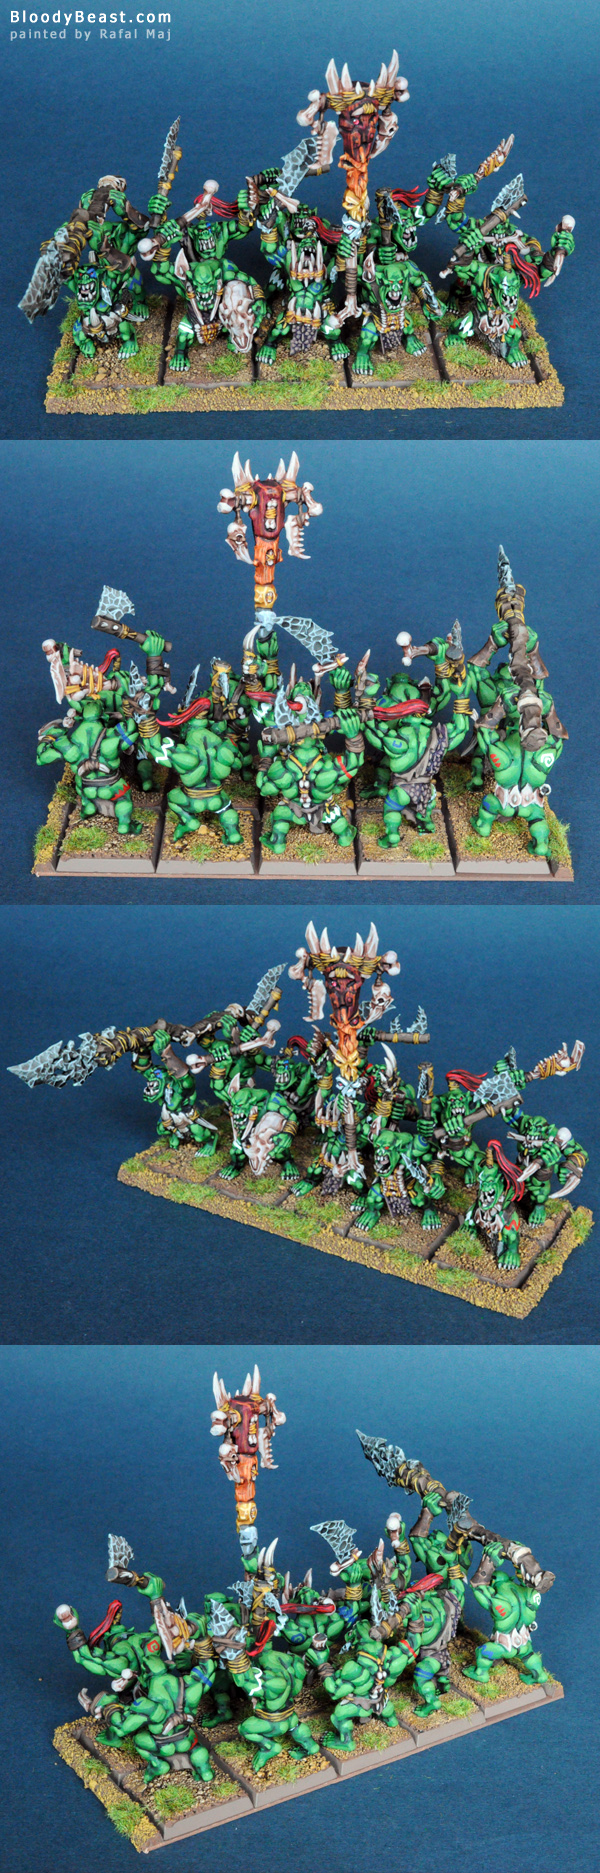 Savage Orc Boyz with Command Group painted by Rafal Maj (BloodyBeast.com)